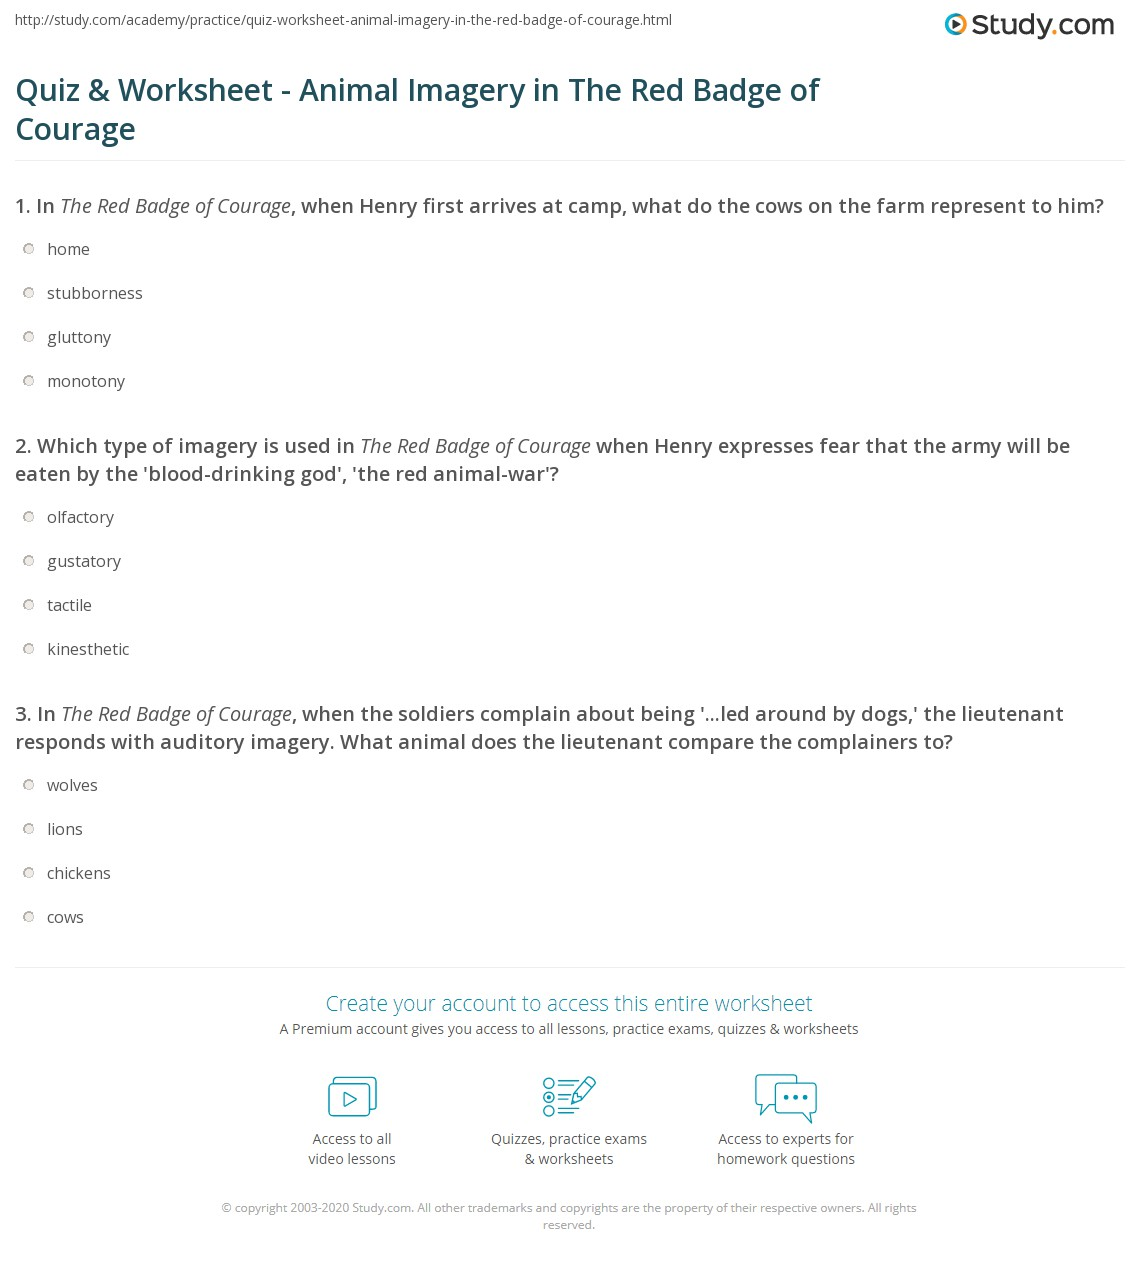 Quiz Worksheet Animal Imagery In The Red Badge Of